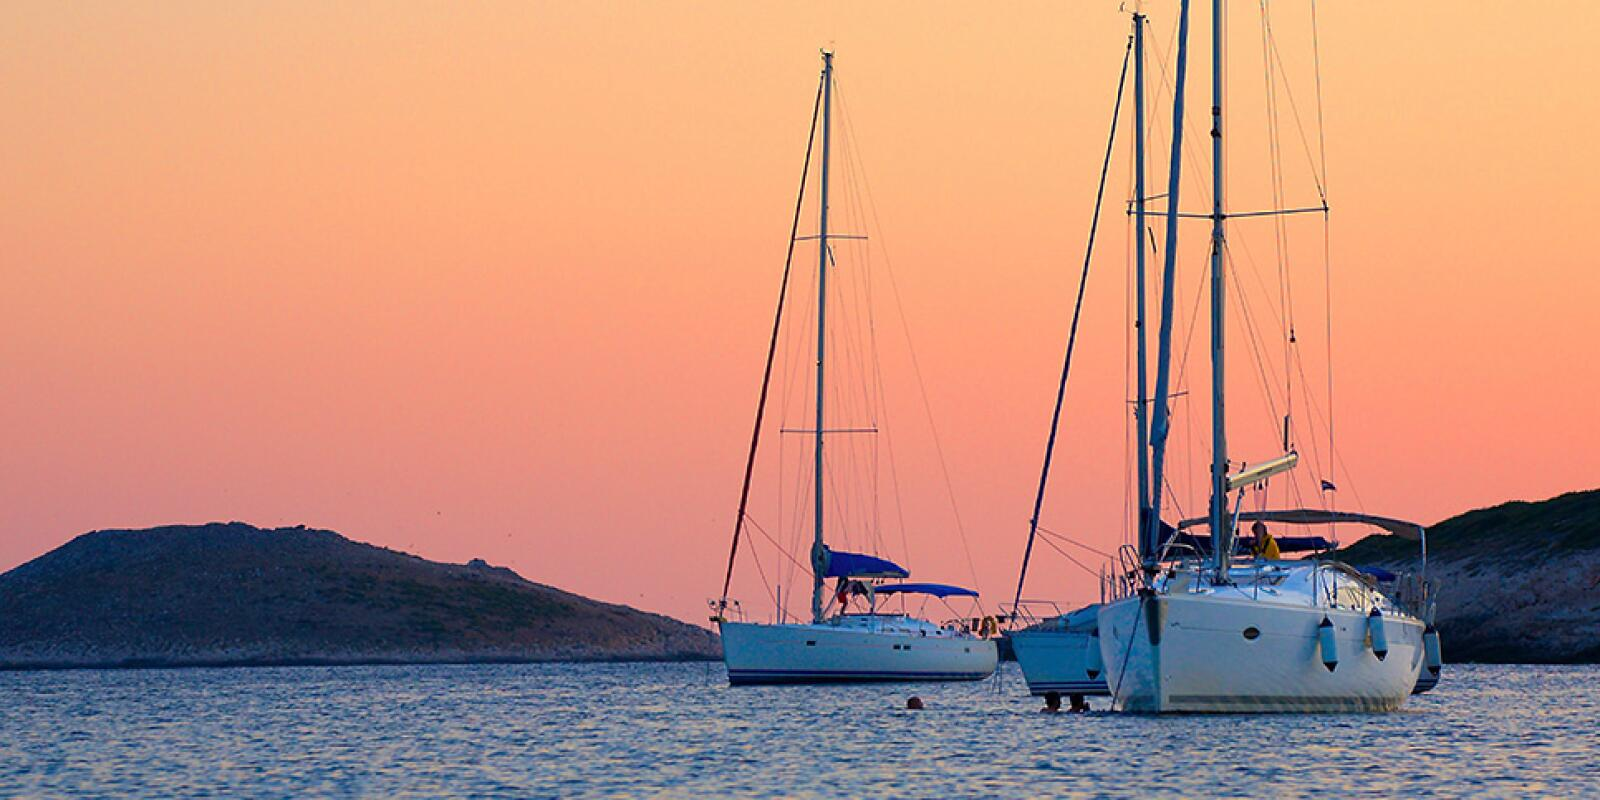 Sport & wellness: Sailing holidays in The Balearic Islands